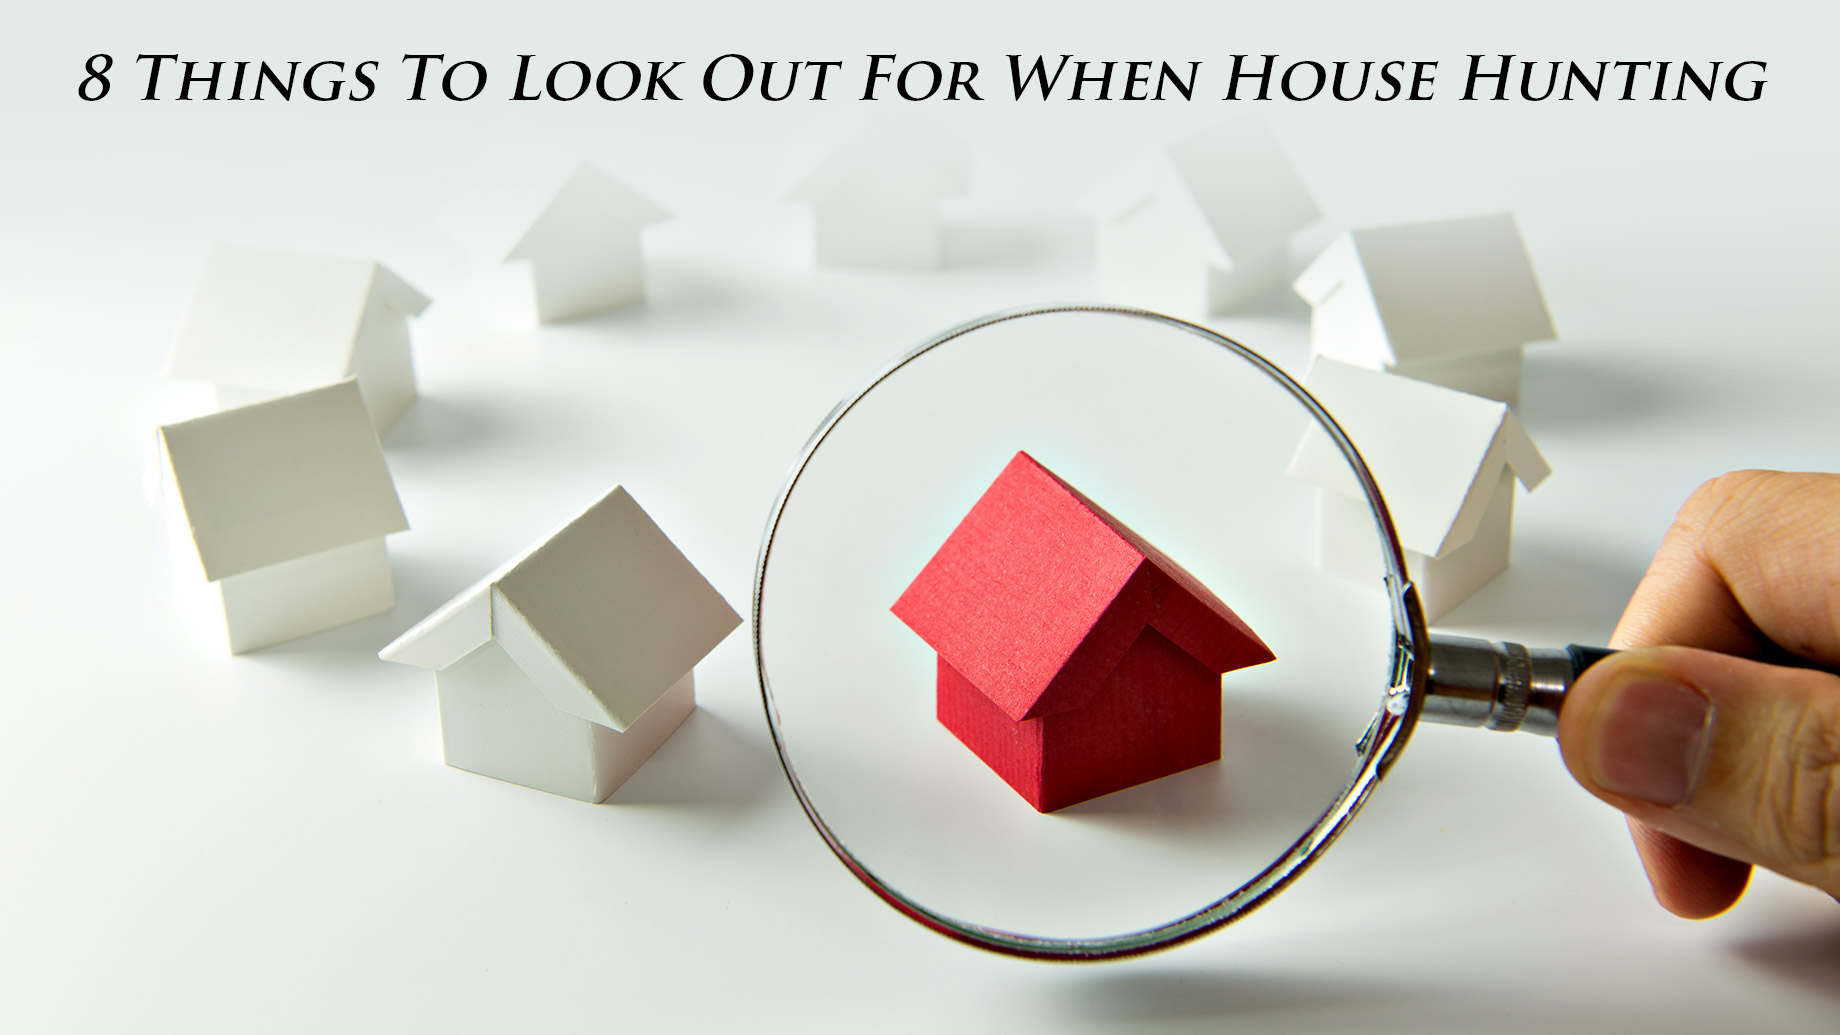 8 Things To Look Out For When House Hunting